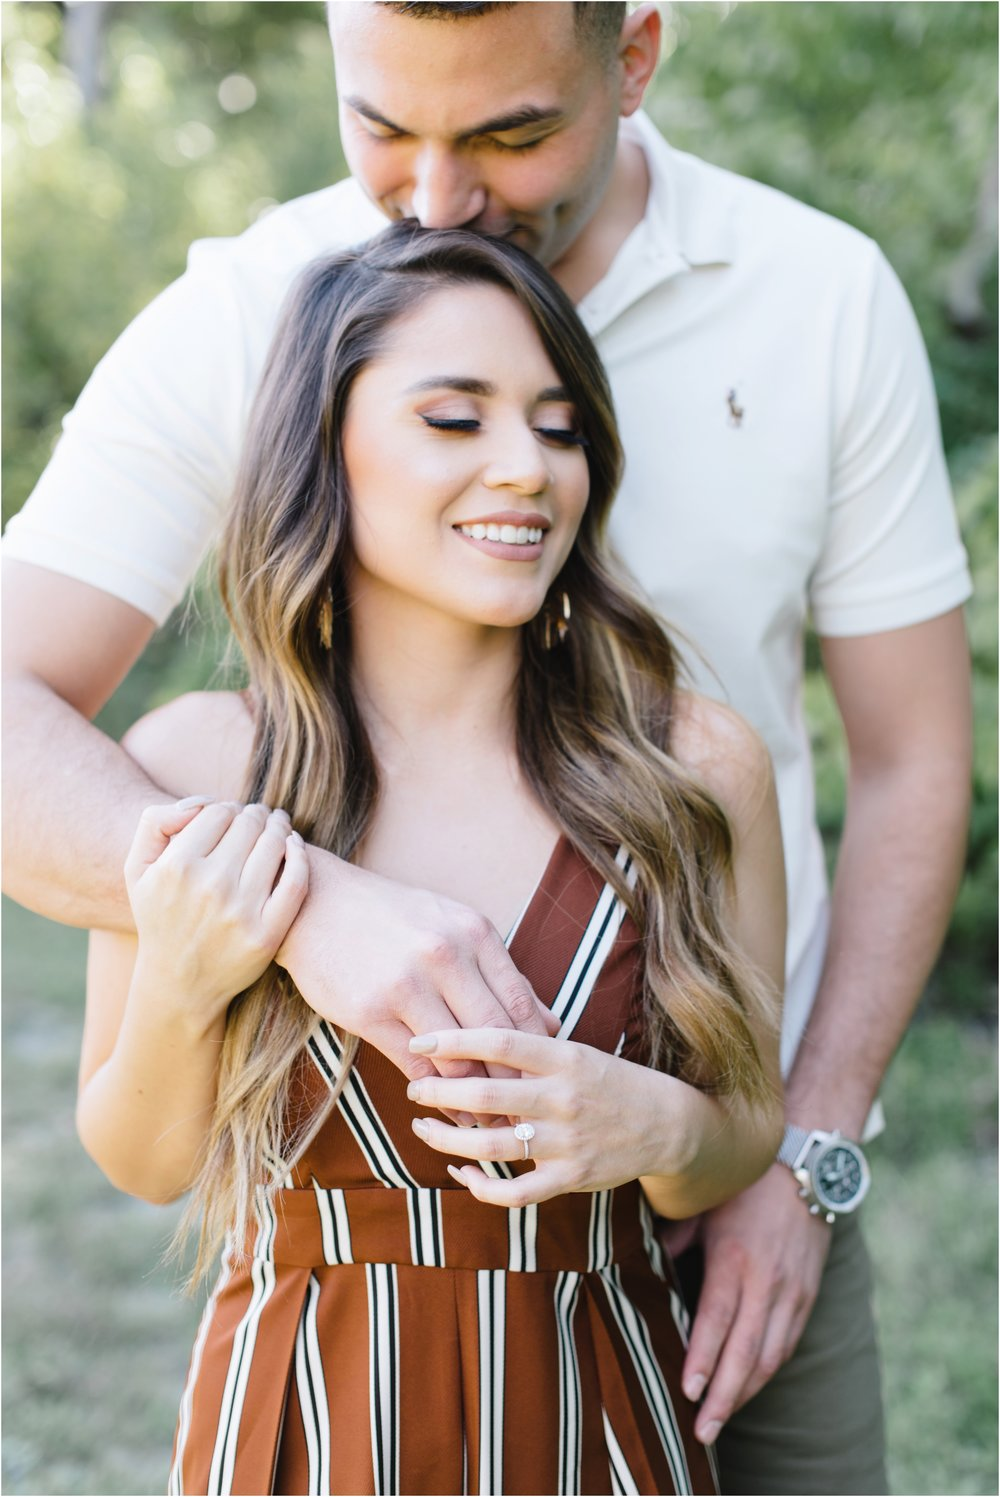 dallasweddingphotographer_Ashley+Adrian_WhiteRockLakeEngagement_0003.jpg